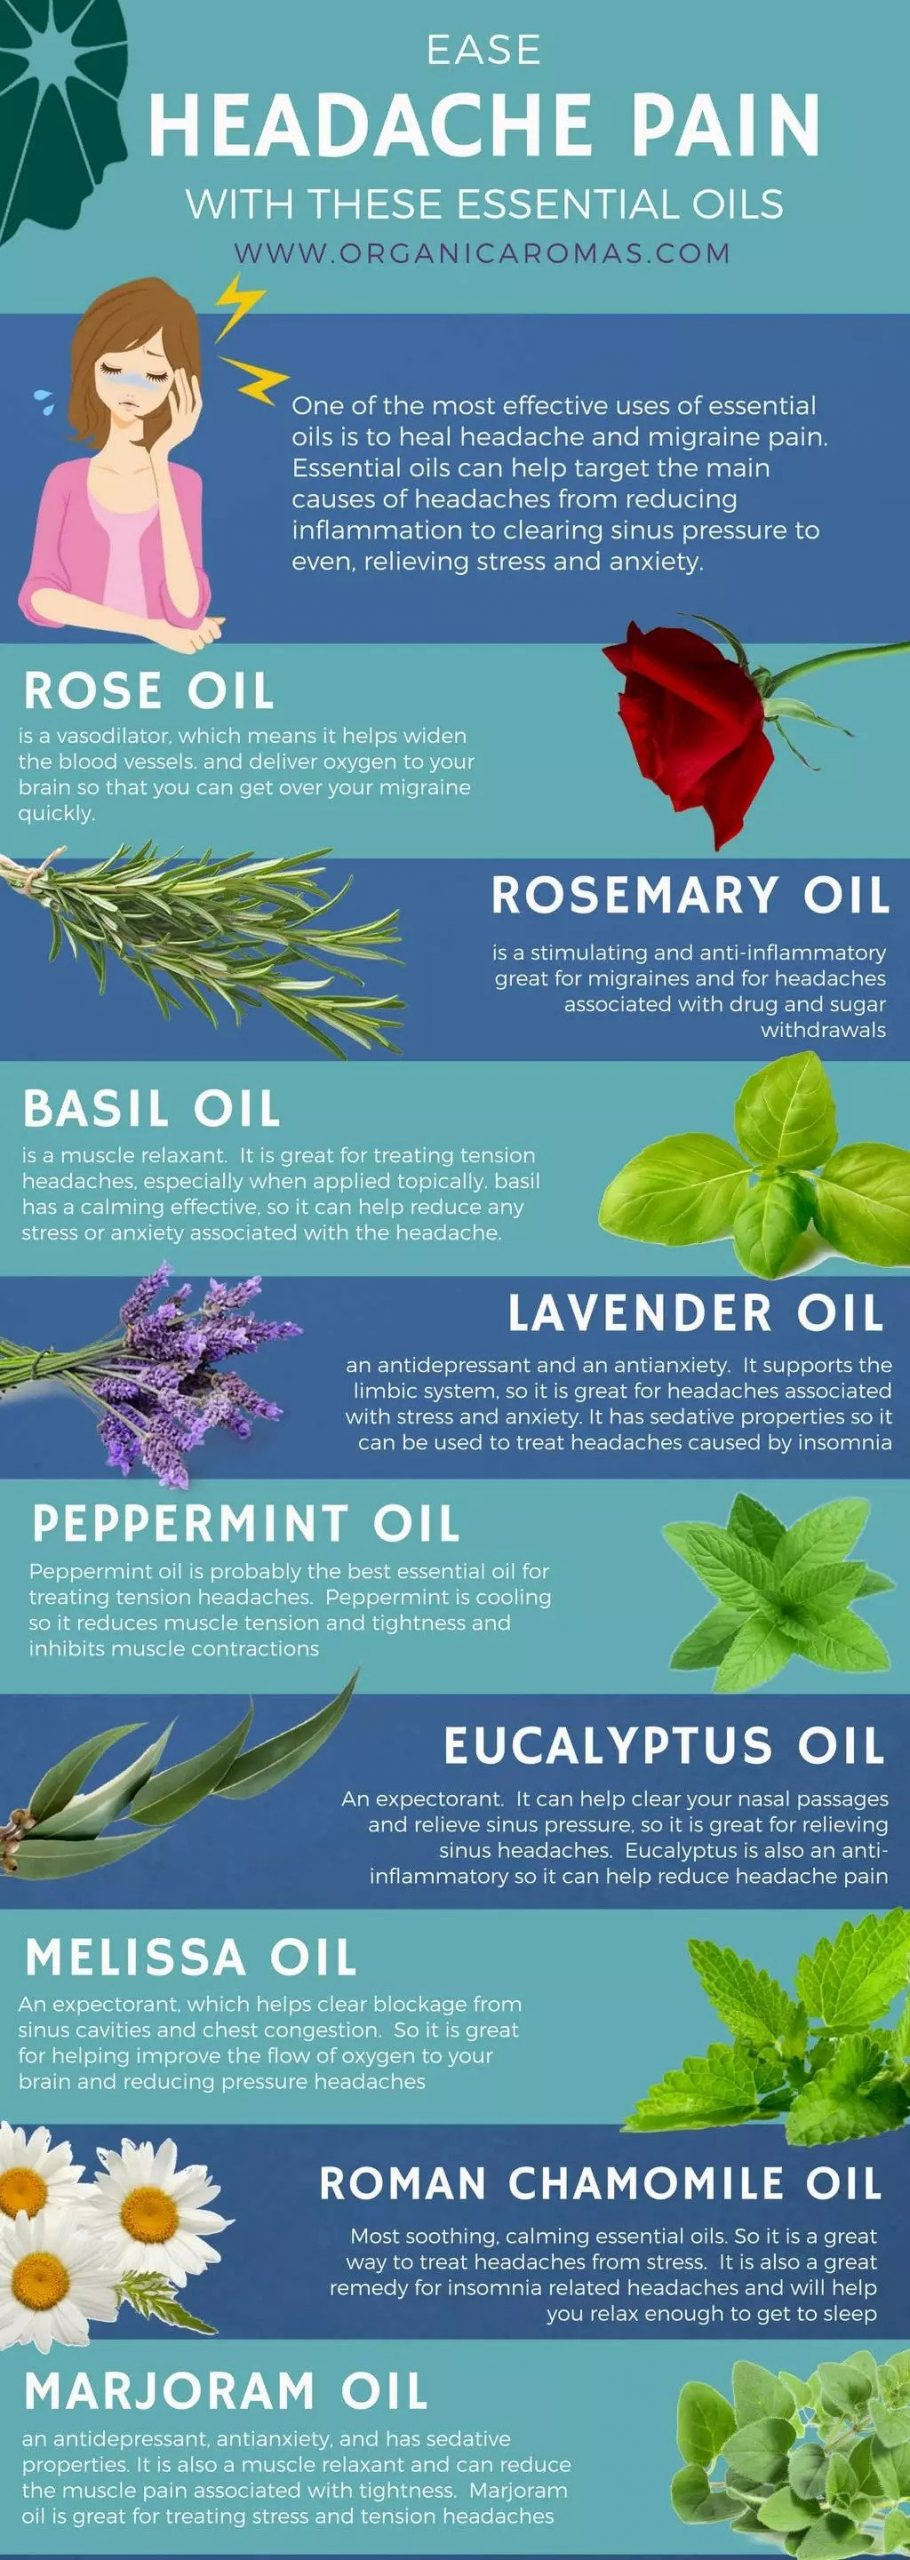 Ease headache with essential oils